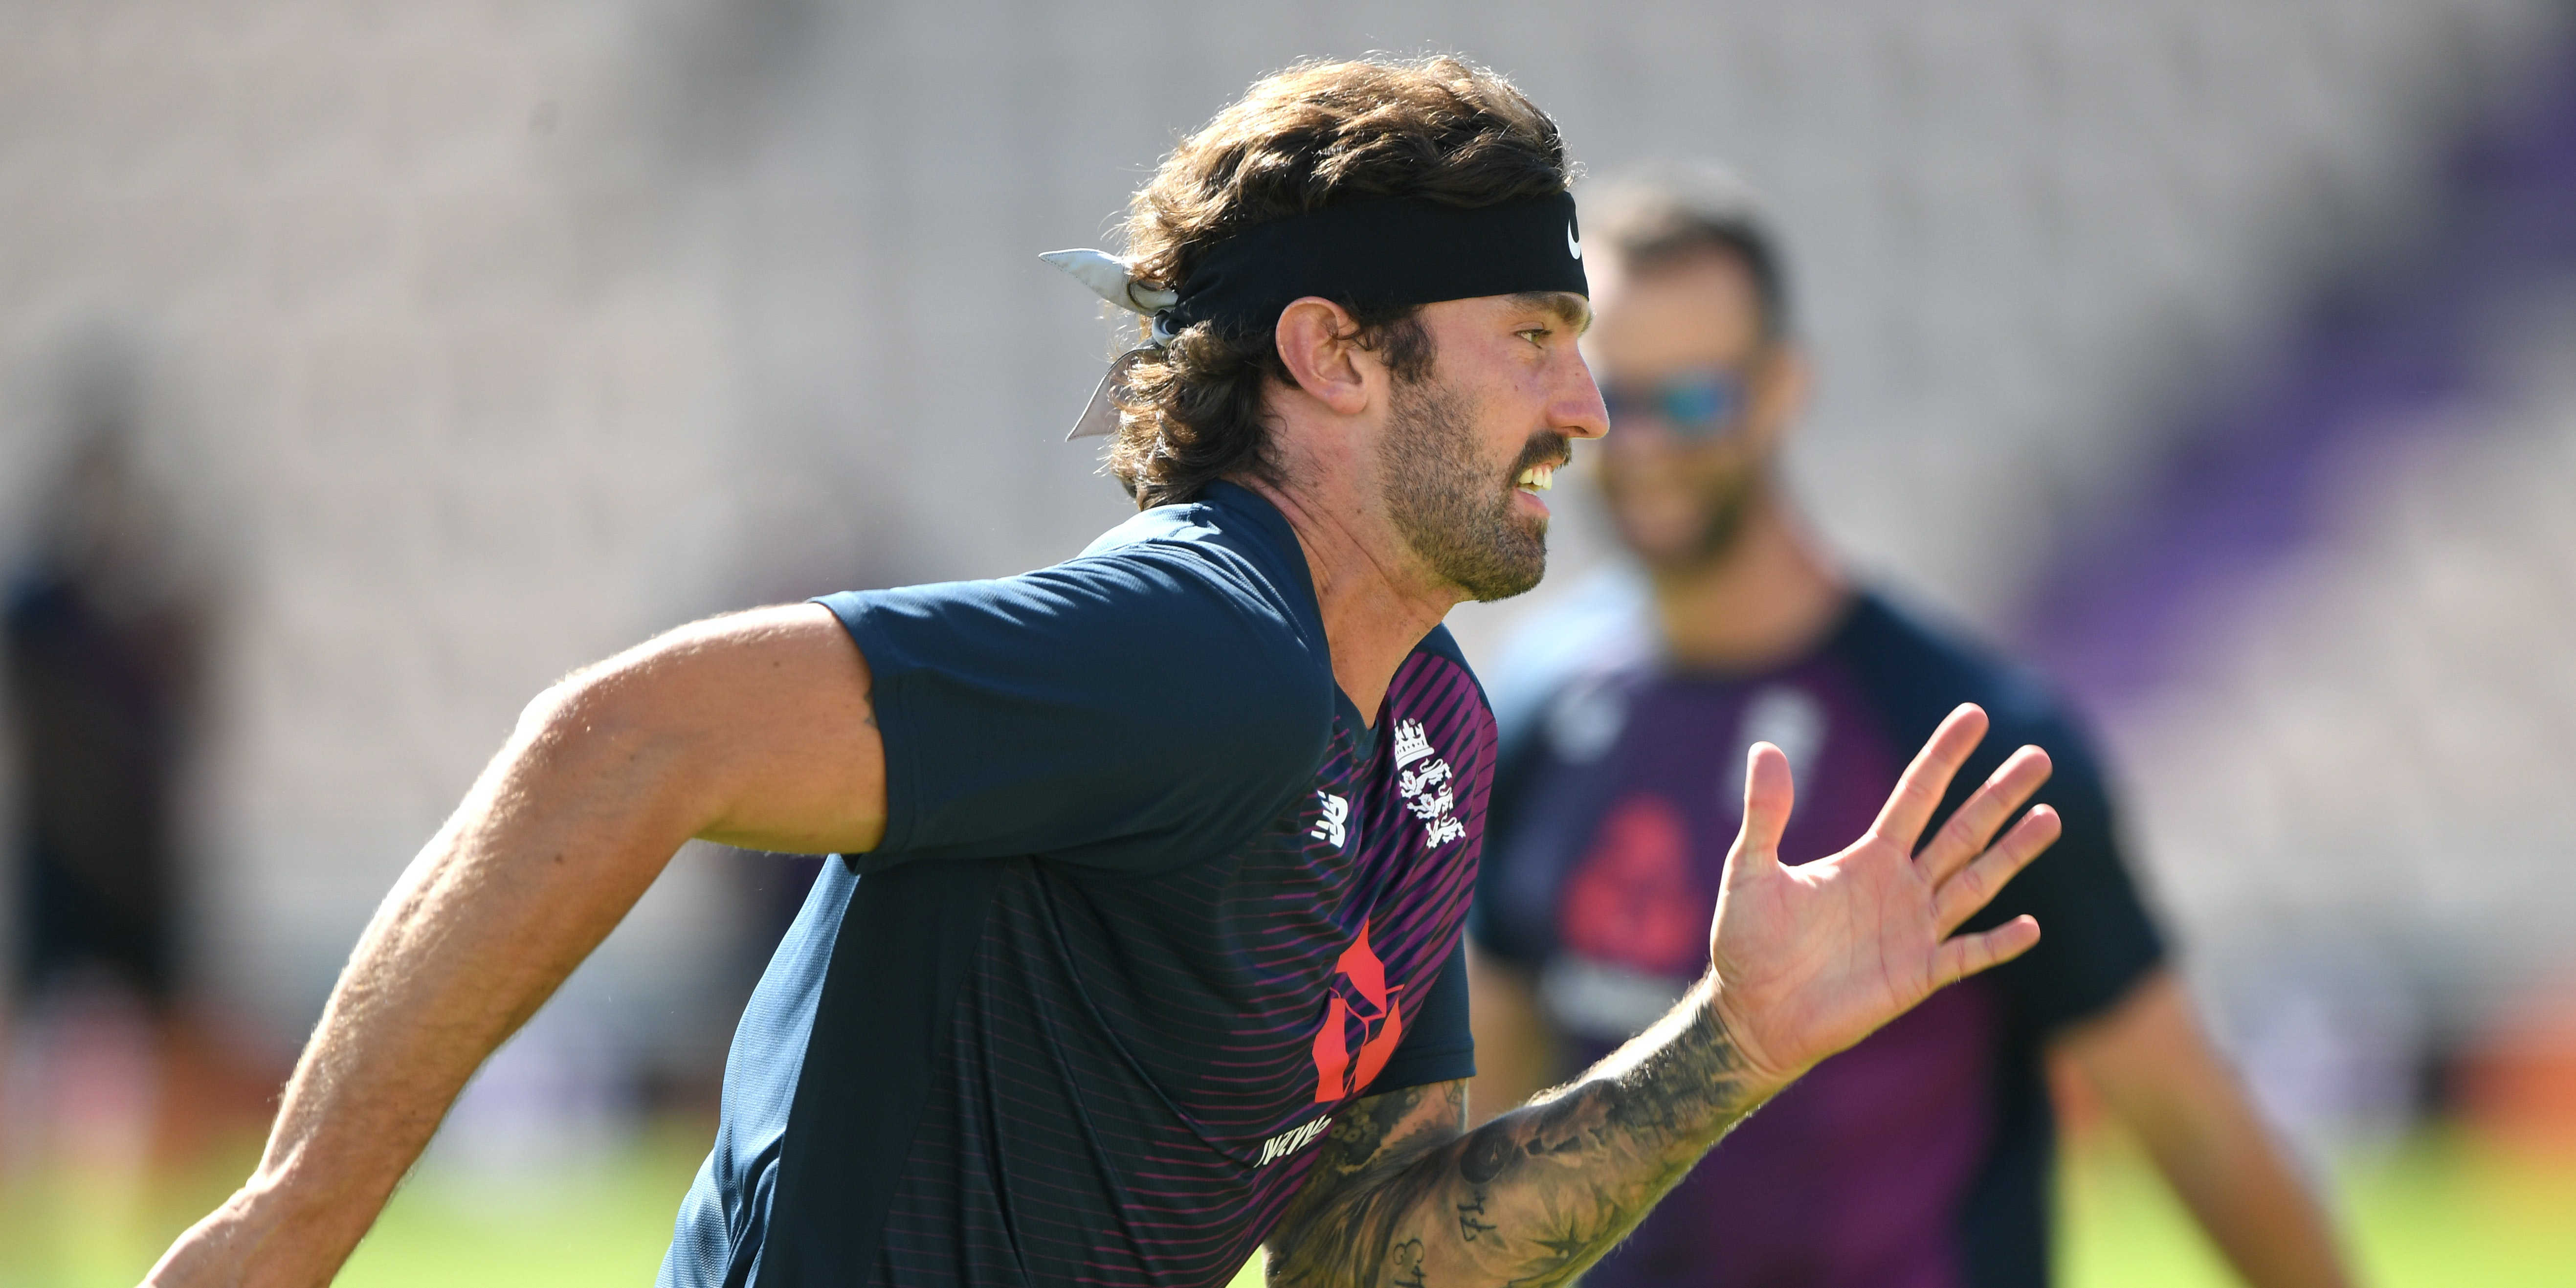 Reece Topley impresses as Surrey edge closer to home tie in Blast quarter-finals